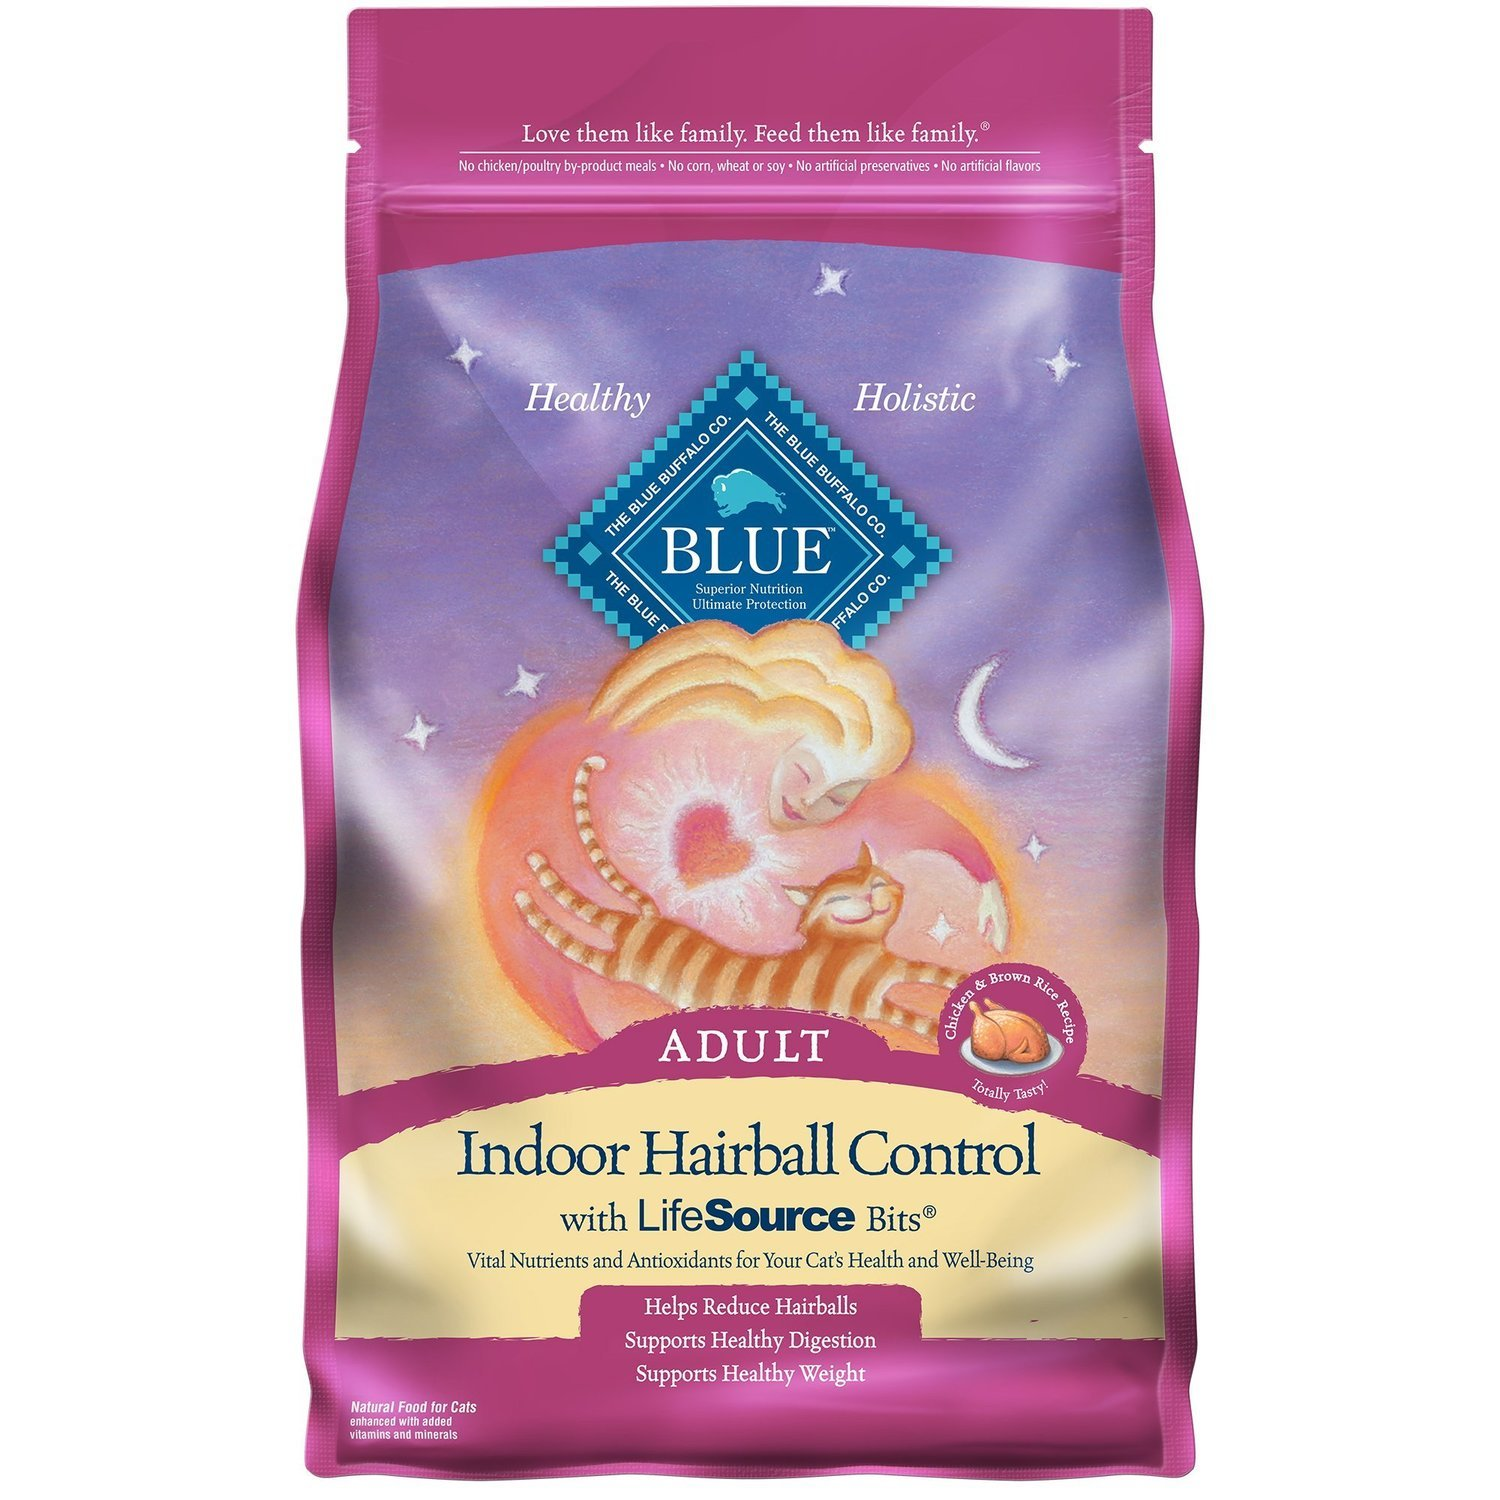 Blue Buffalo Indoor Hairball Control Chicken & Brown Rice Adult Cat Food, 7 lbs. (10/18) (A.P6)